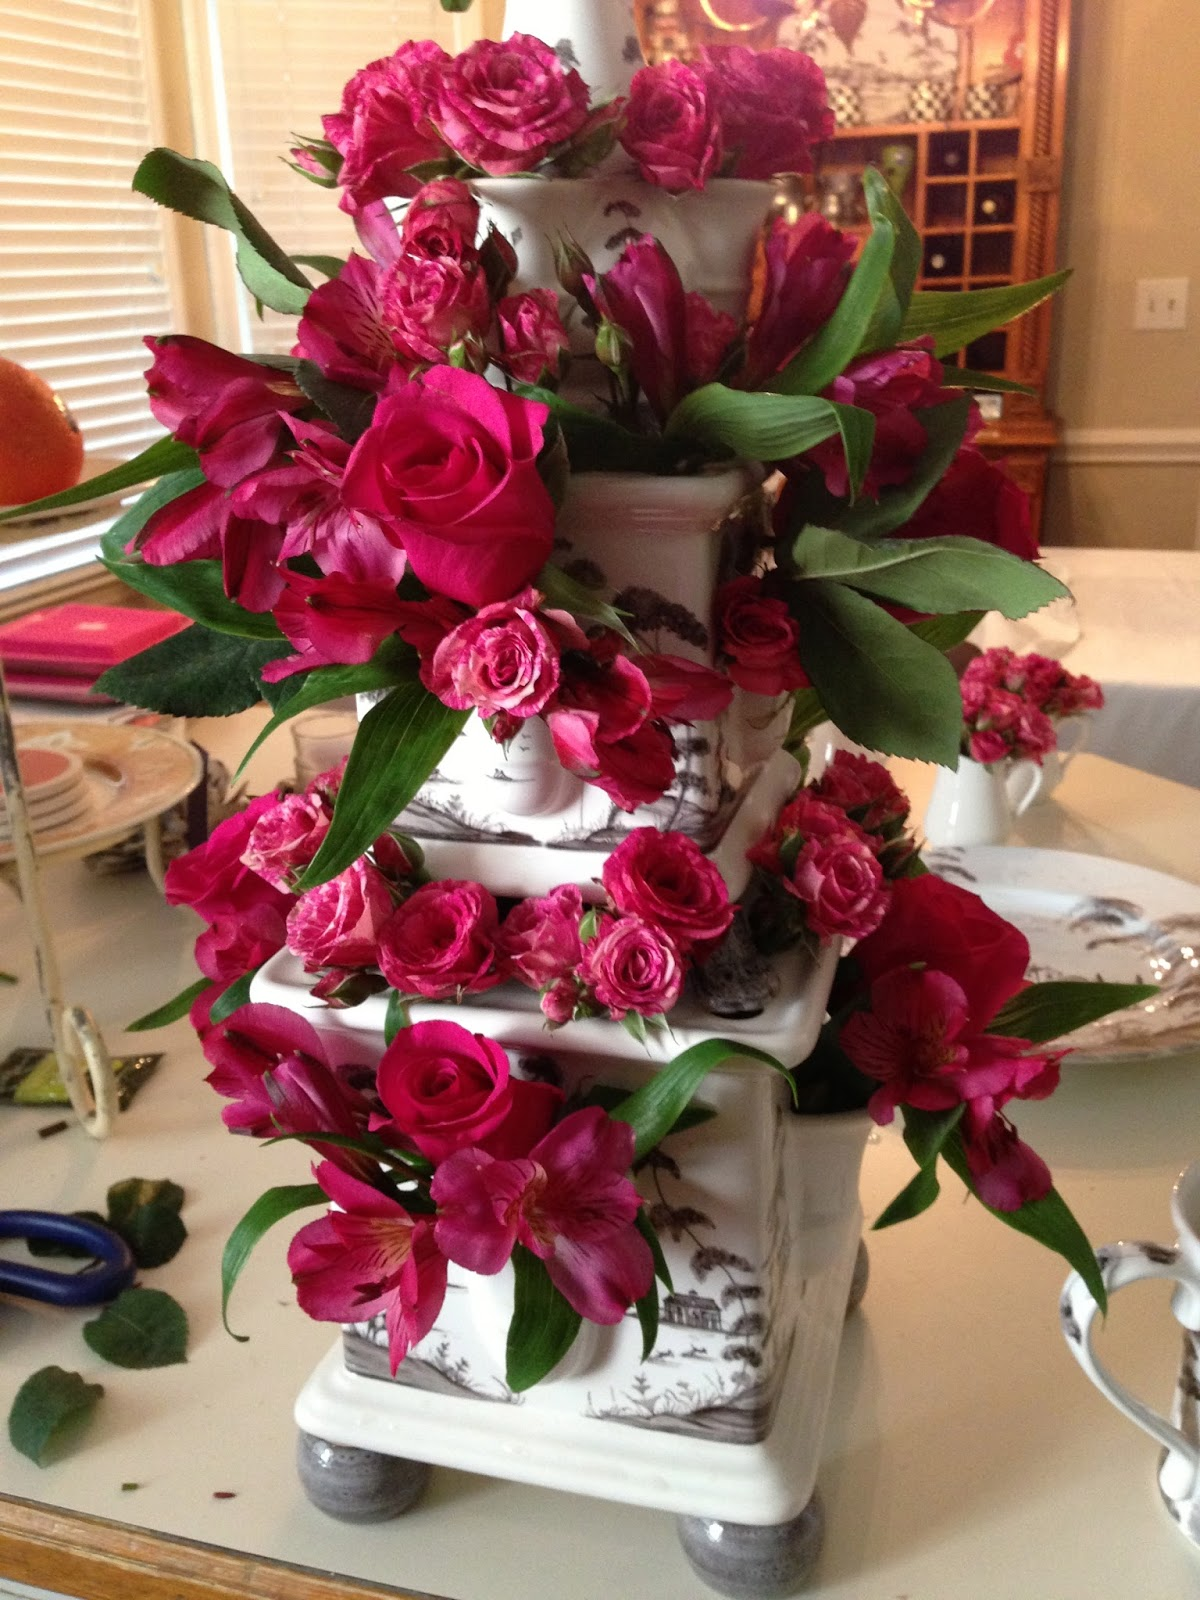 Lisa mende design the simplest way to arrange flowers we just celebrated my 90 year old mother in laws birthday while i love decorating for a party as much as the next person my mother in law demanded we izmirmasajfo